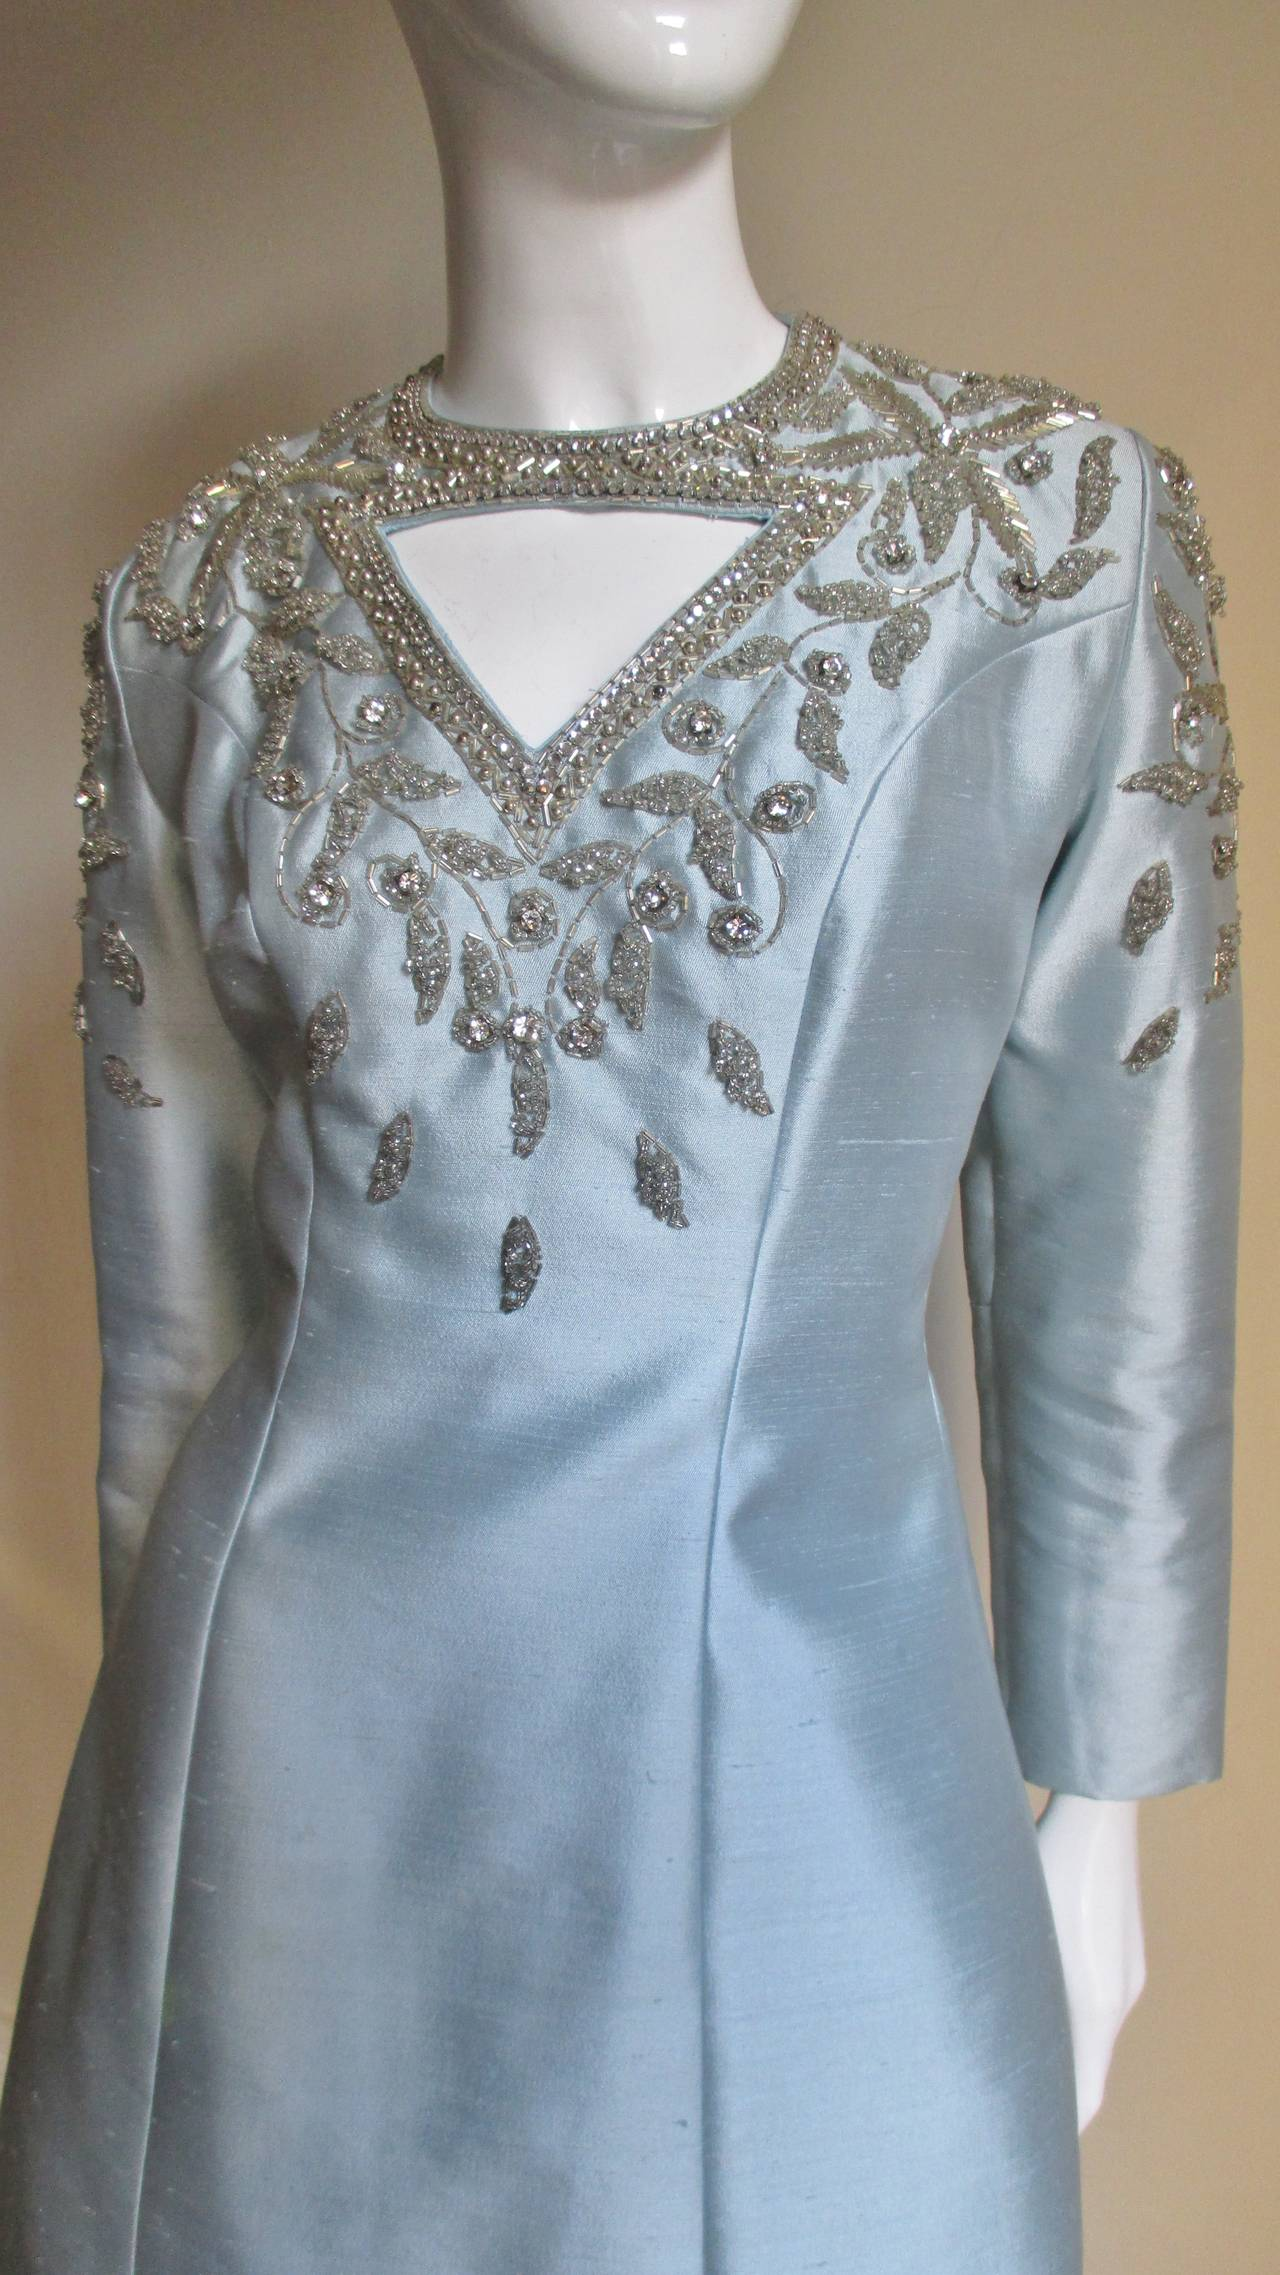 Beautiful baby blue silk beaded and rhinestones dress from Bernetti, New York.  Princess seamed for shaping with triangular cutouts just below the neck front and back.  Both are outlined in prong set rhinestones and elaborately framed in silver